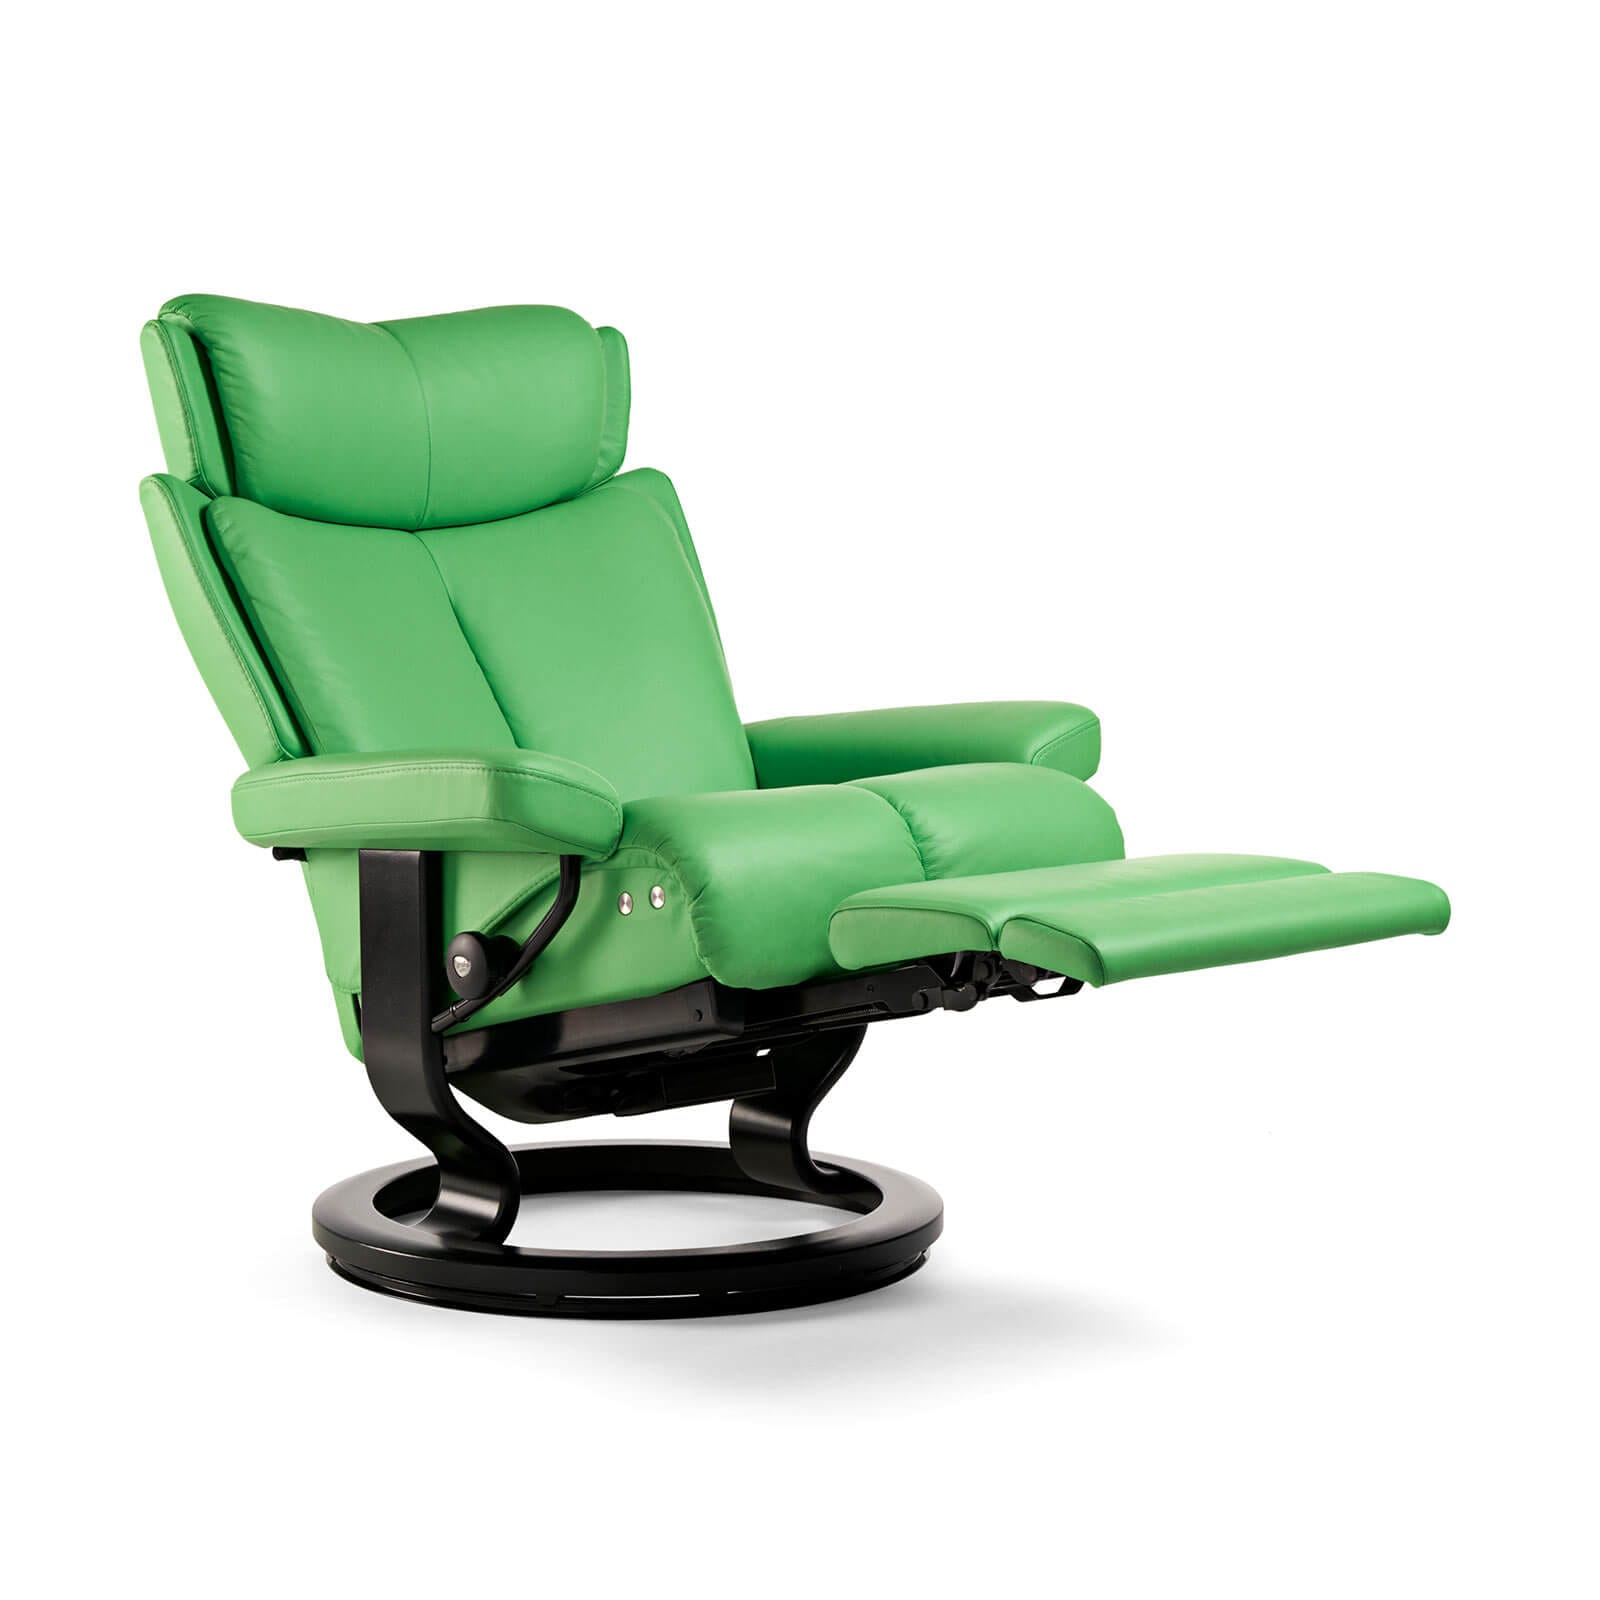 Summer Casual Geflecht Relax-sessel Stressless Magic Legcomfort Paloma Summer Green Stressless